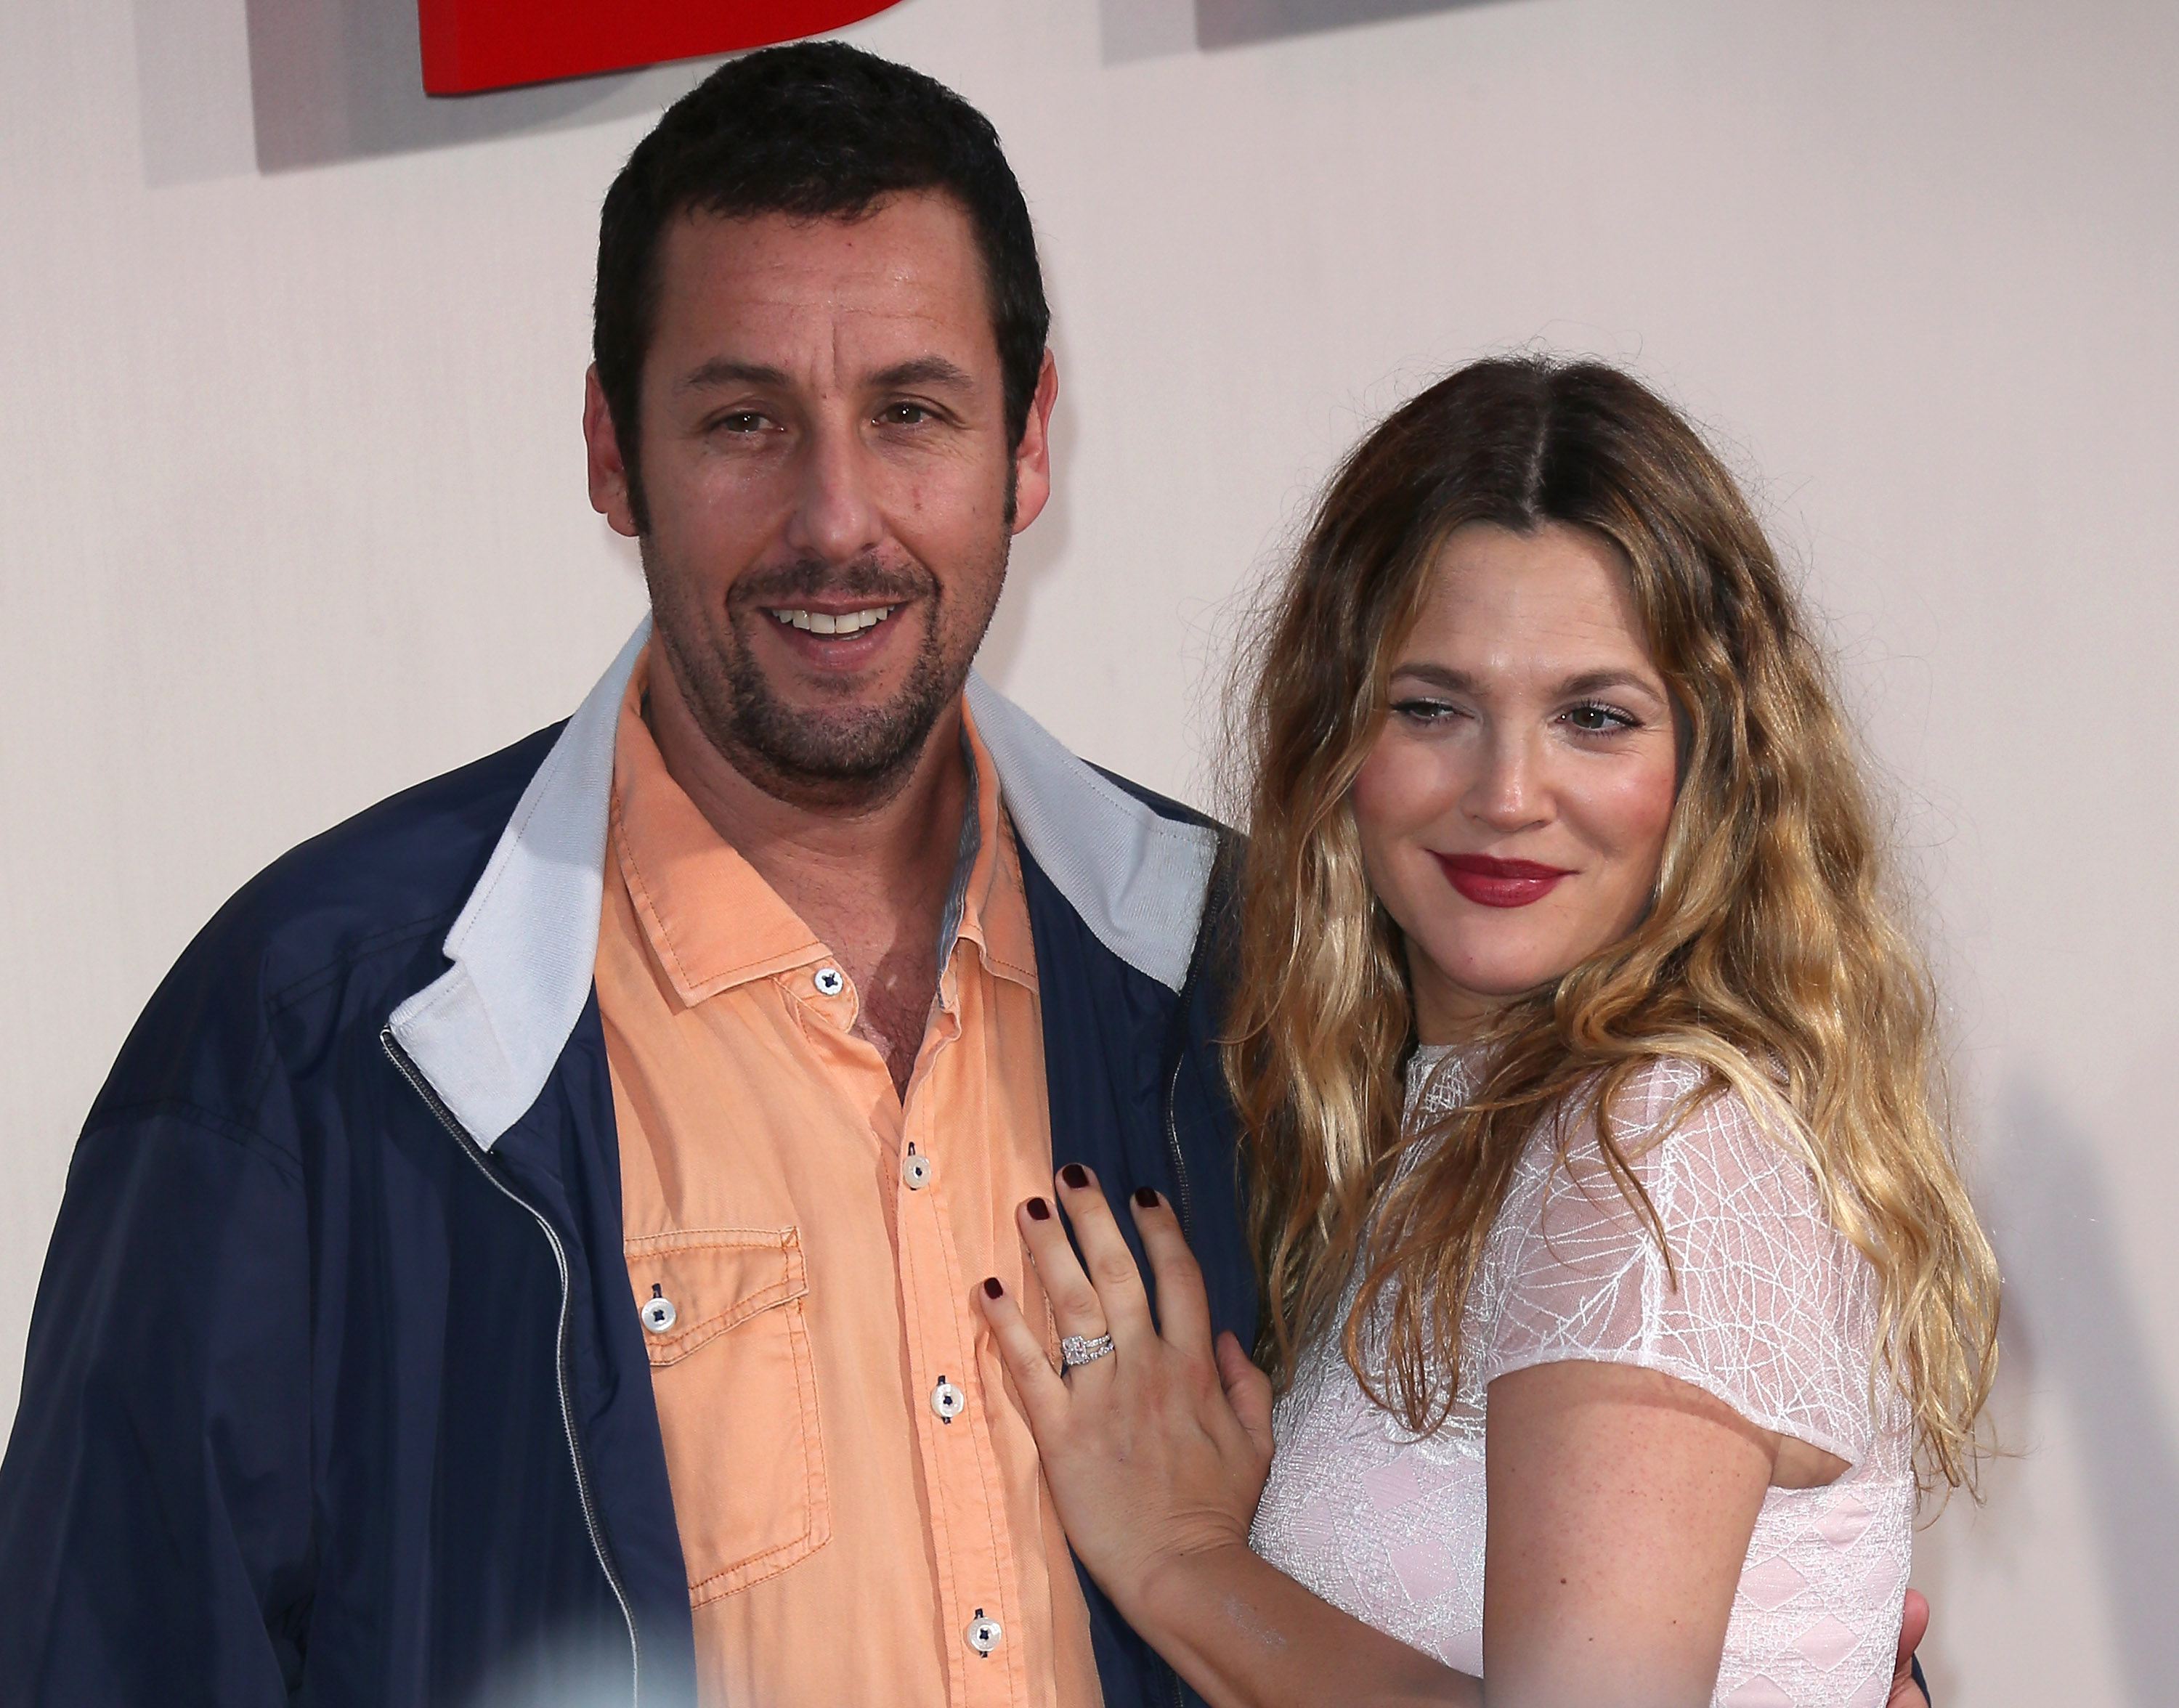 Actors Adam Sandler and Drew Barrymore attend the Los Angeles premiere of  Blended  at the TCL Chinese Theatre on May 21, 2014 in Hollywood, California.